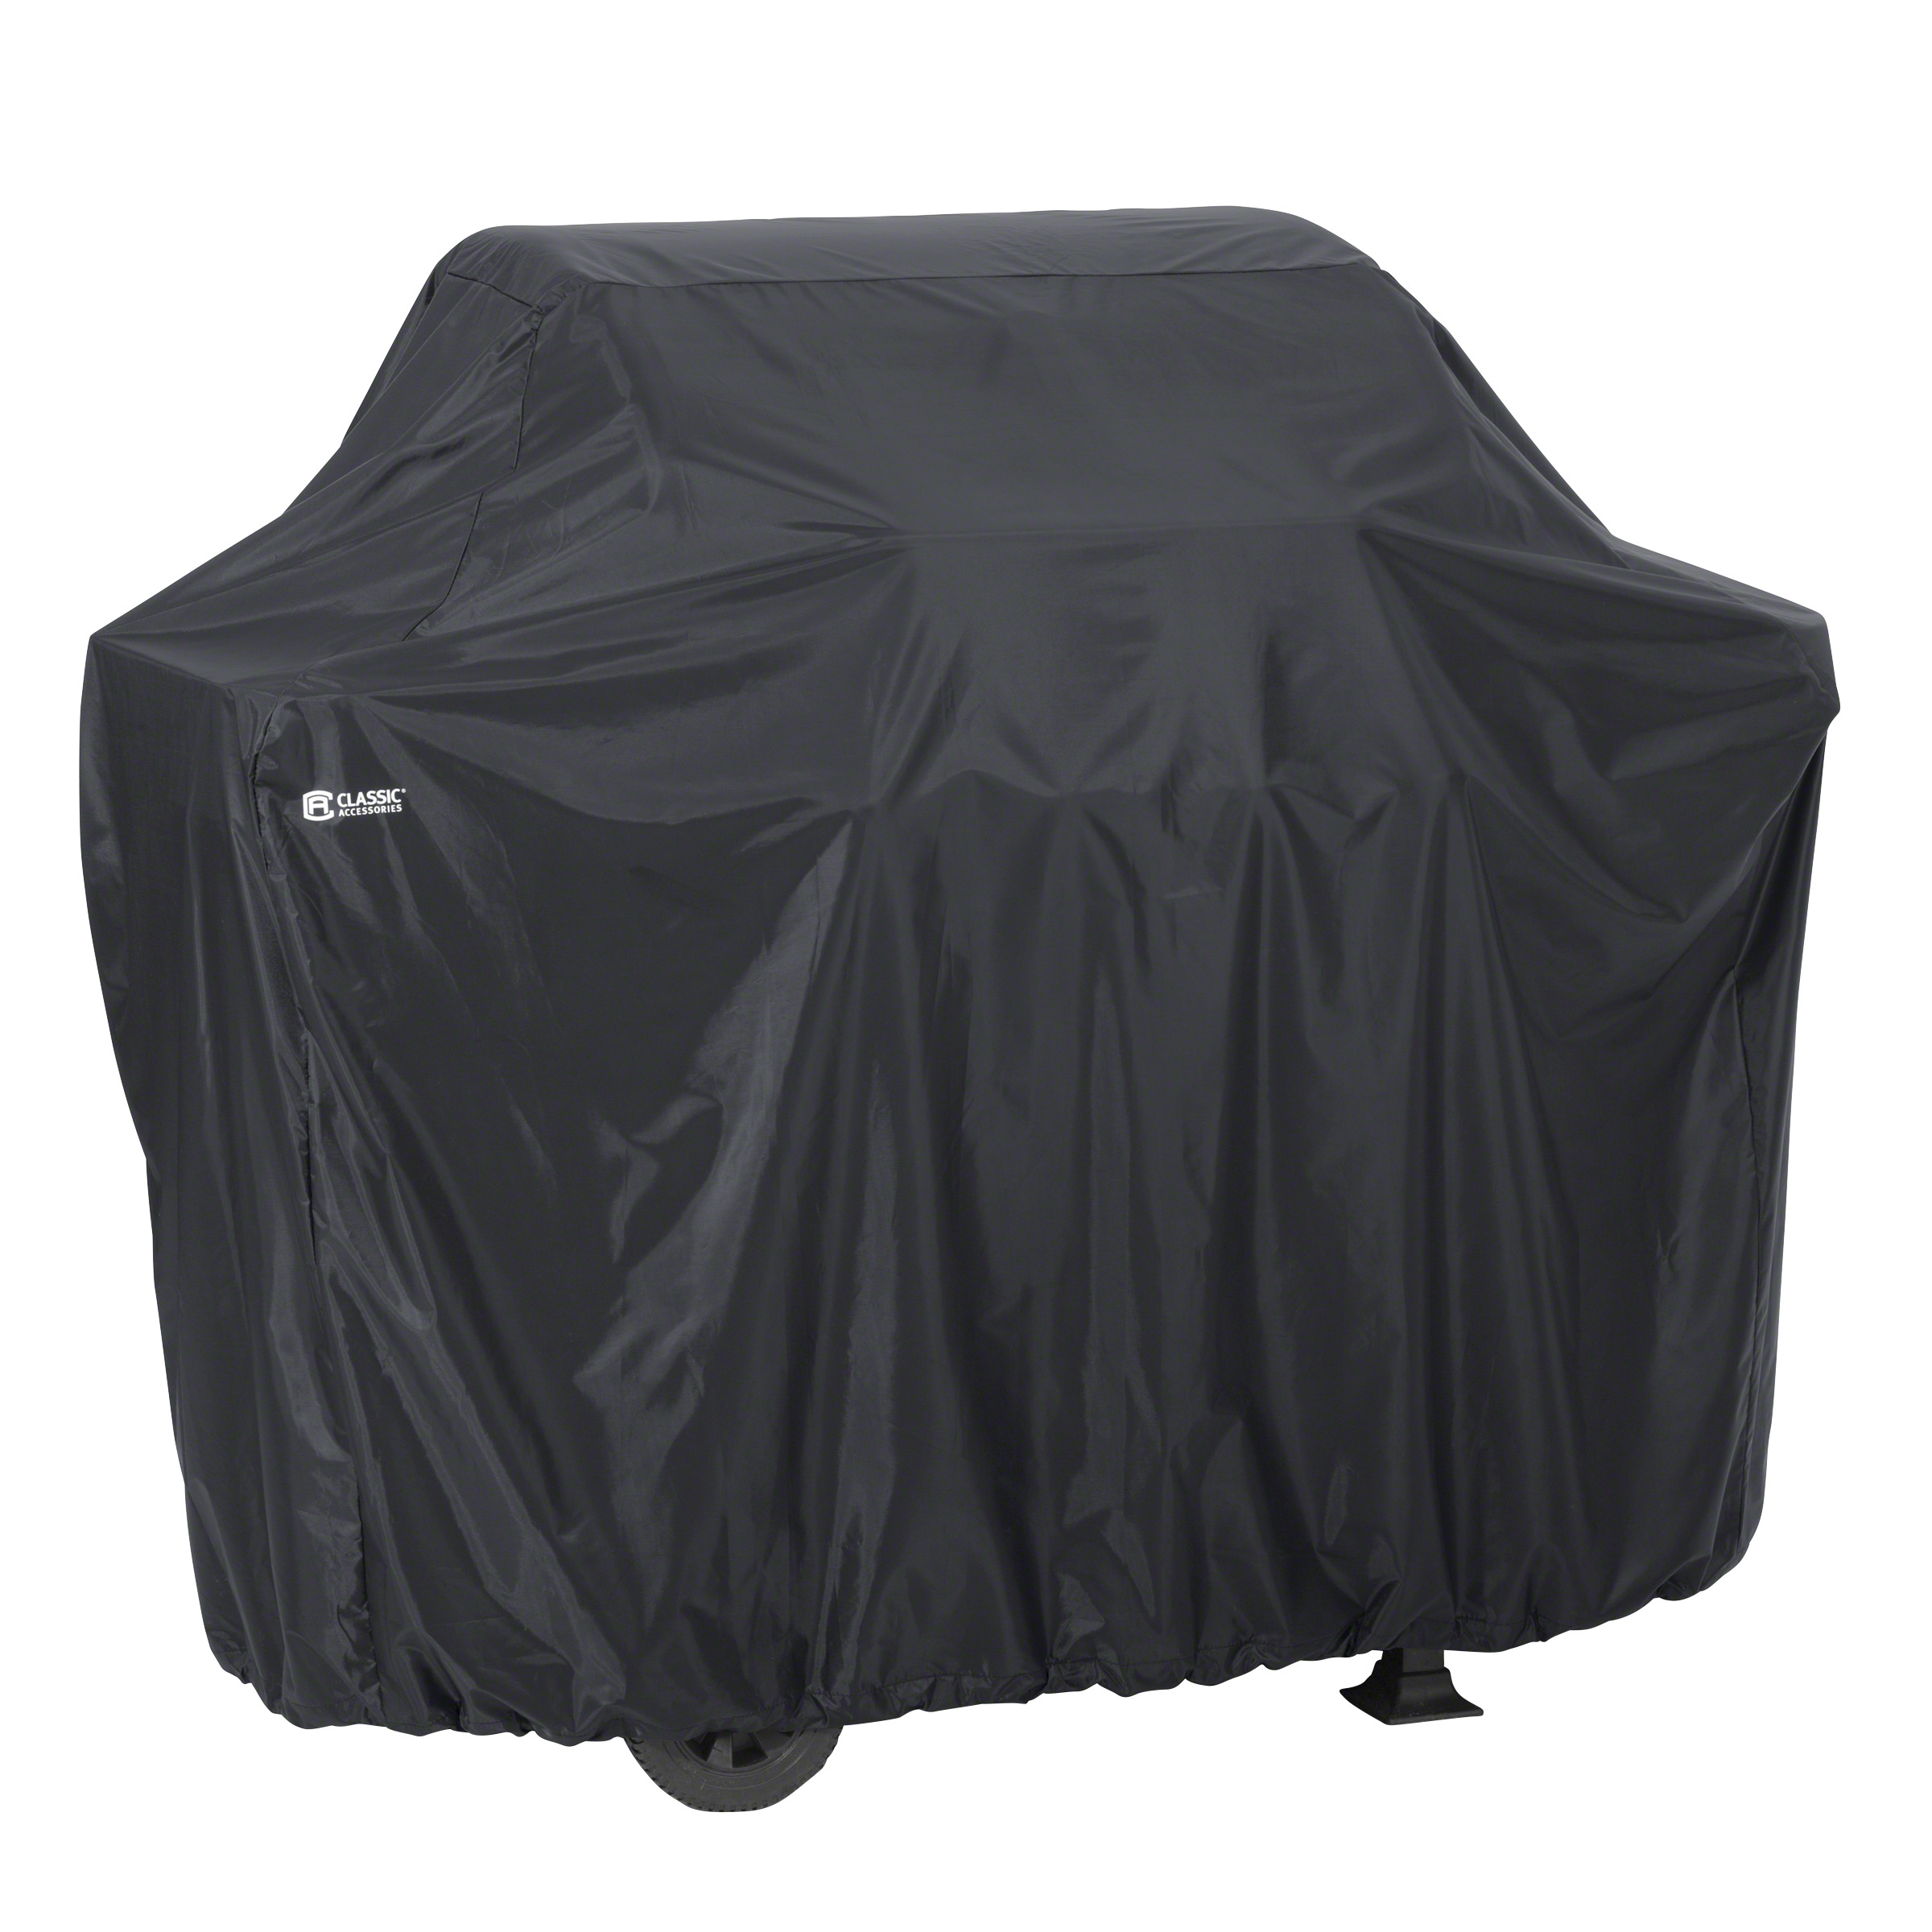 Classic Accessories SODO™ Plus Black Grill Cover - Tough BBQ Cover with Weather Resistant Fabric, 38-Inch (55-938-360401-EC)